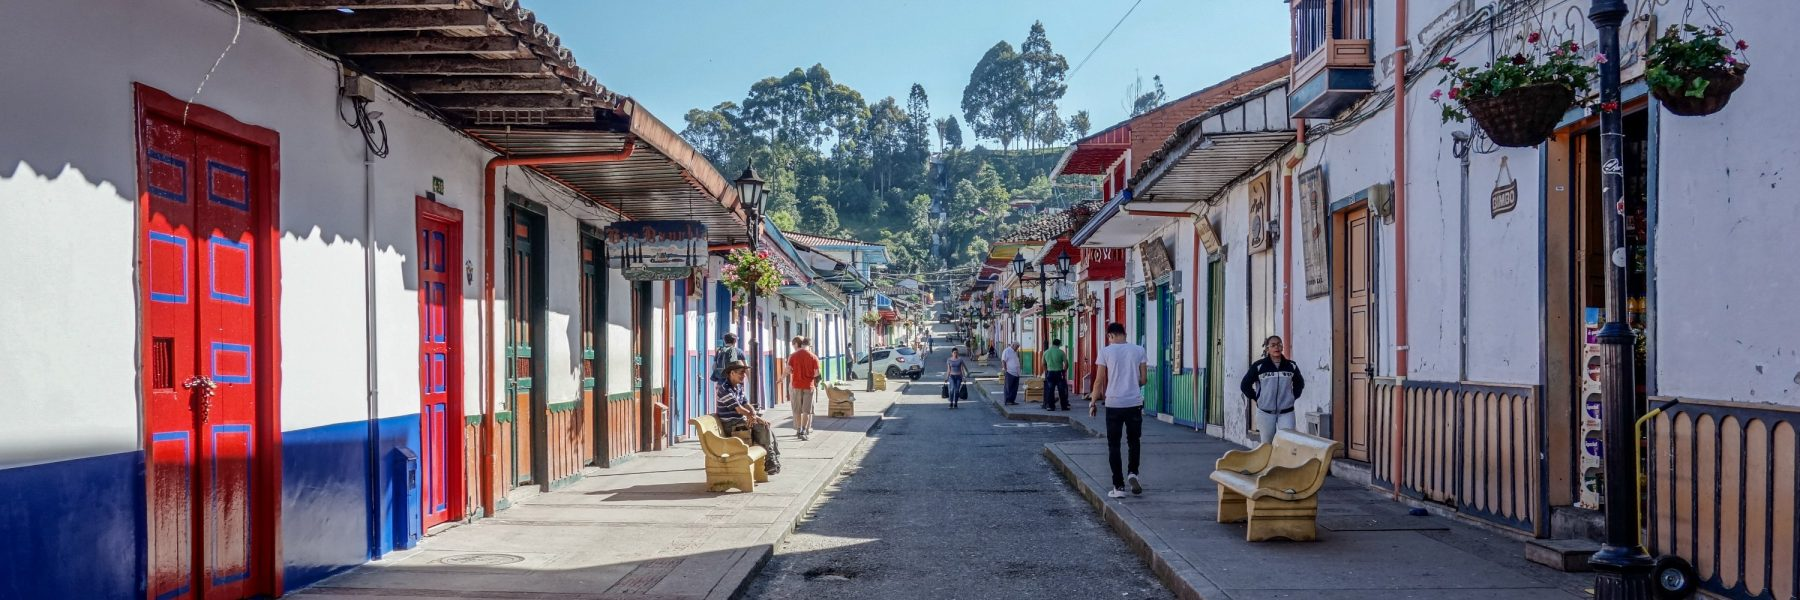 Street view in Salento, Colombia